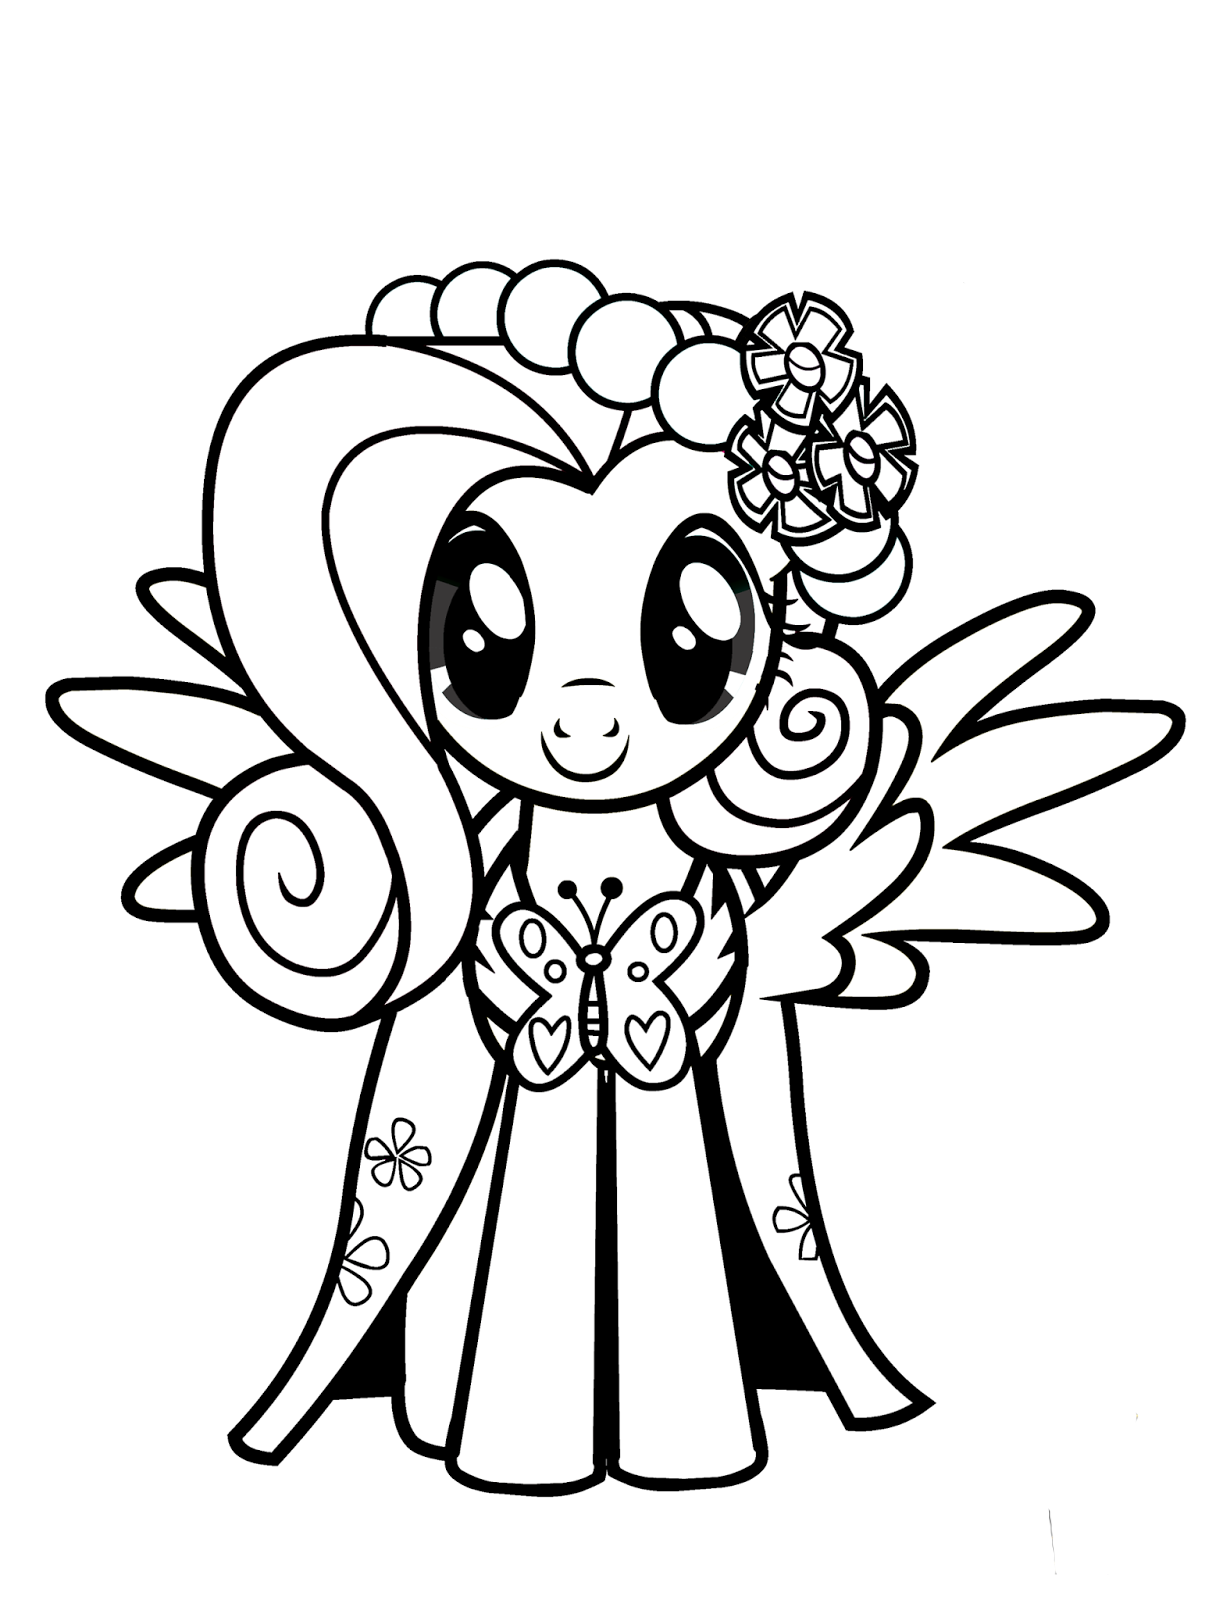 Fluttershy Coloring Pages Best Coloring Pages For Kids Coloring For